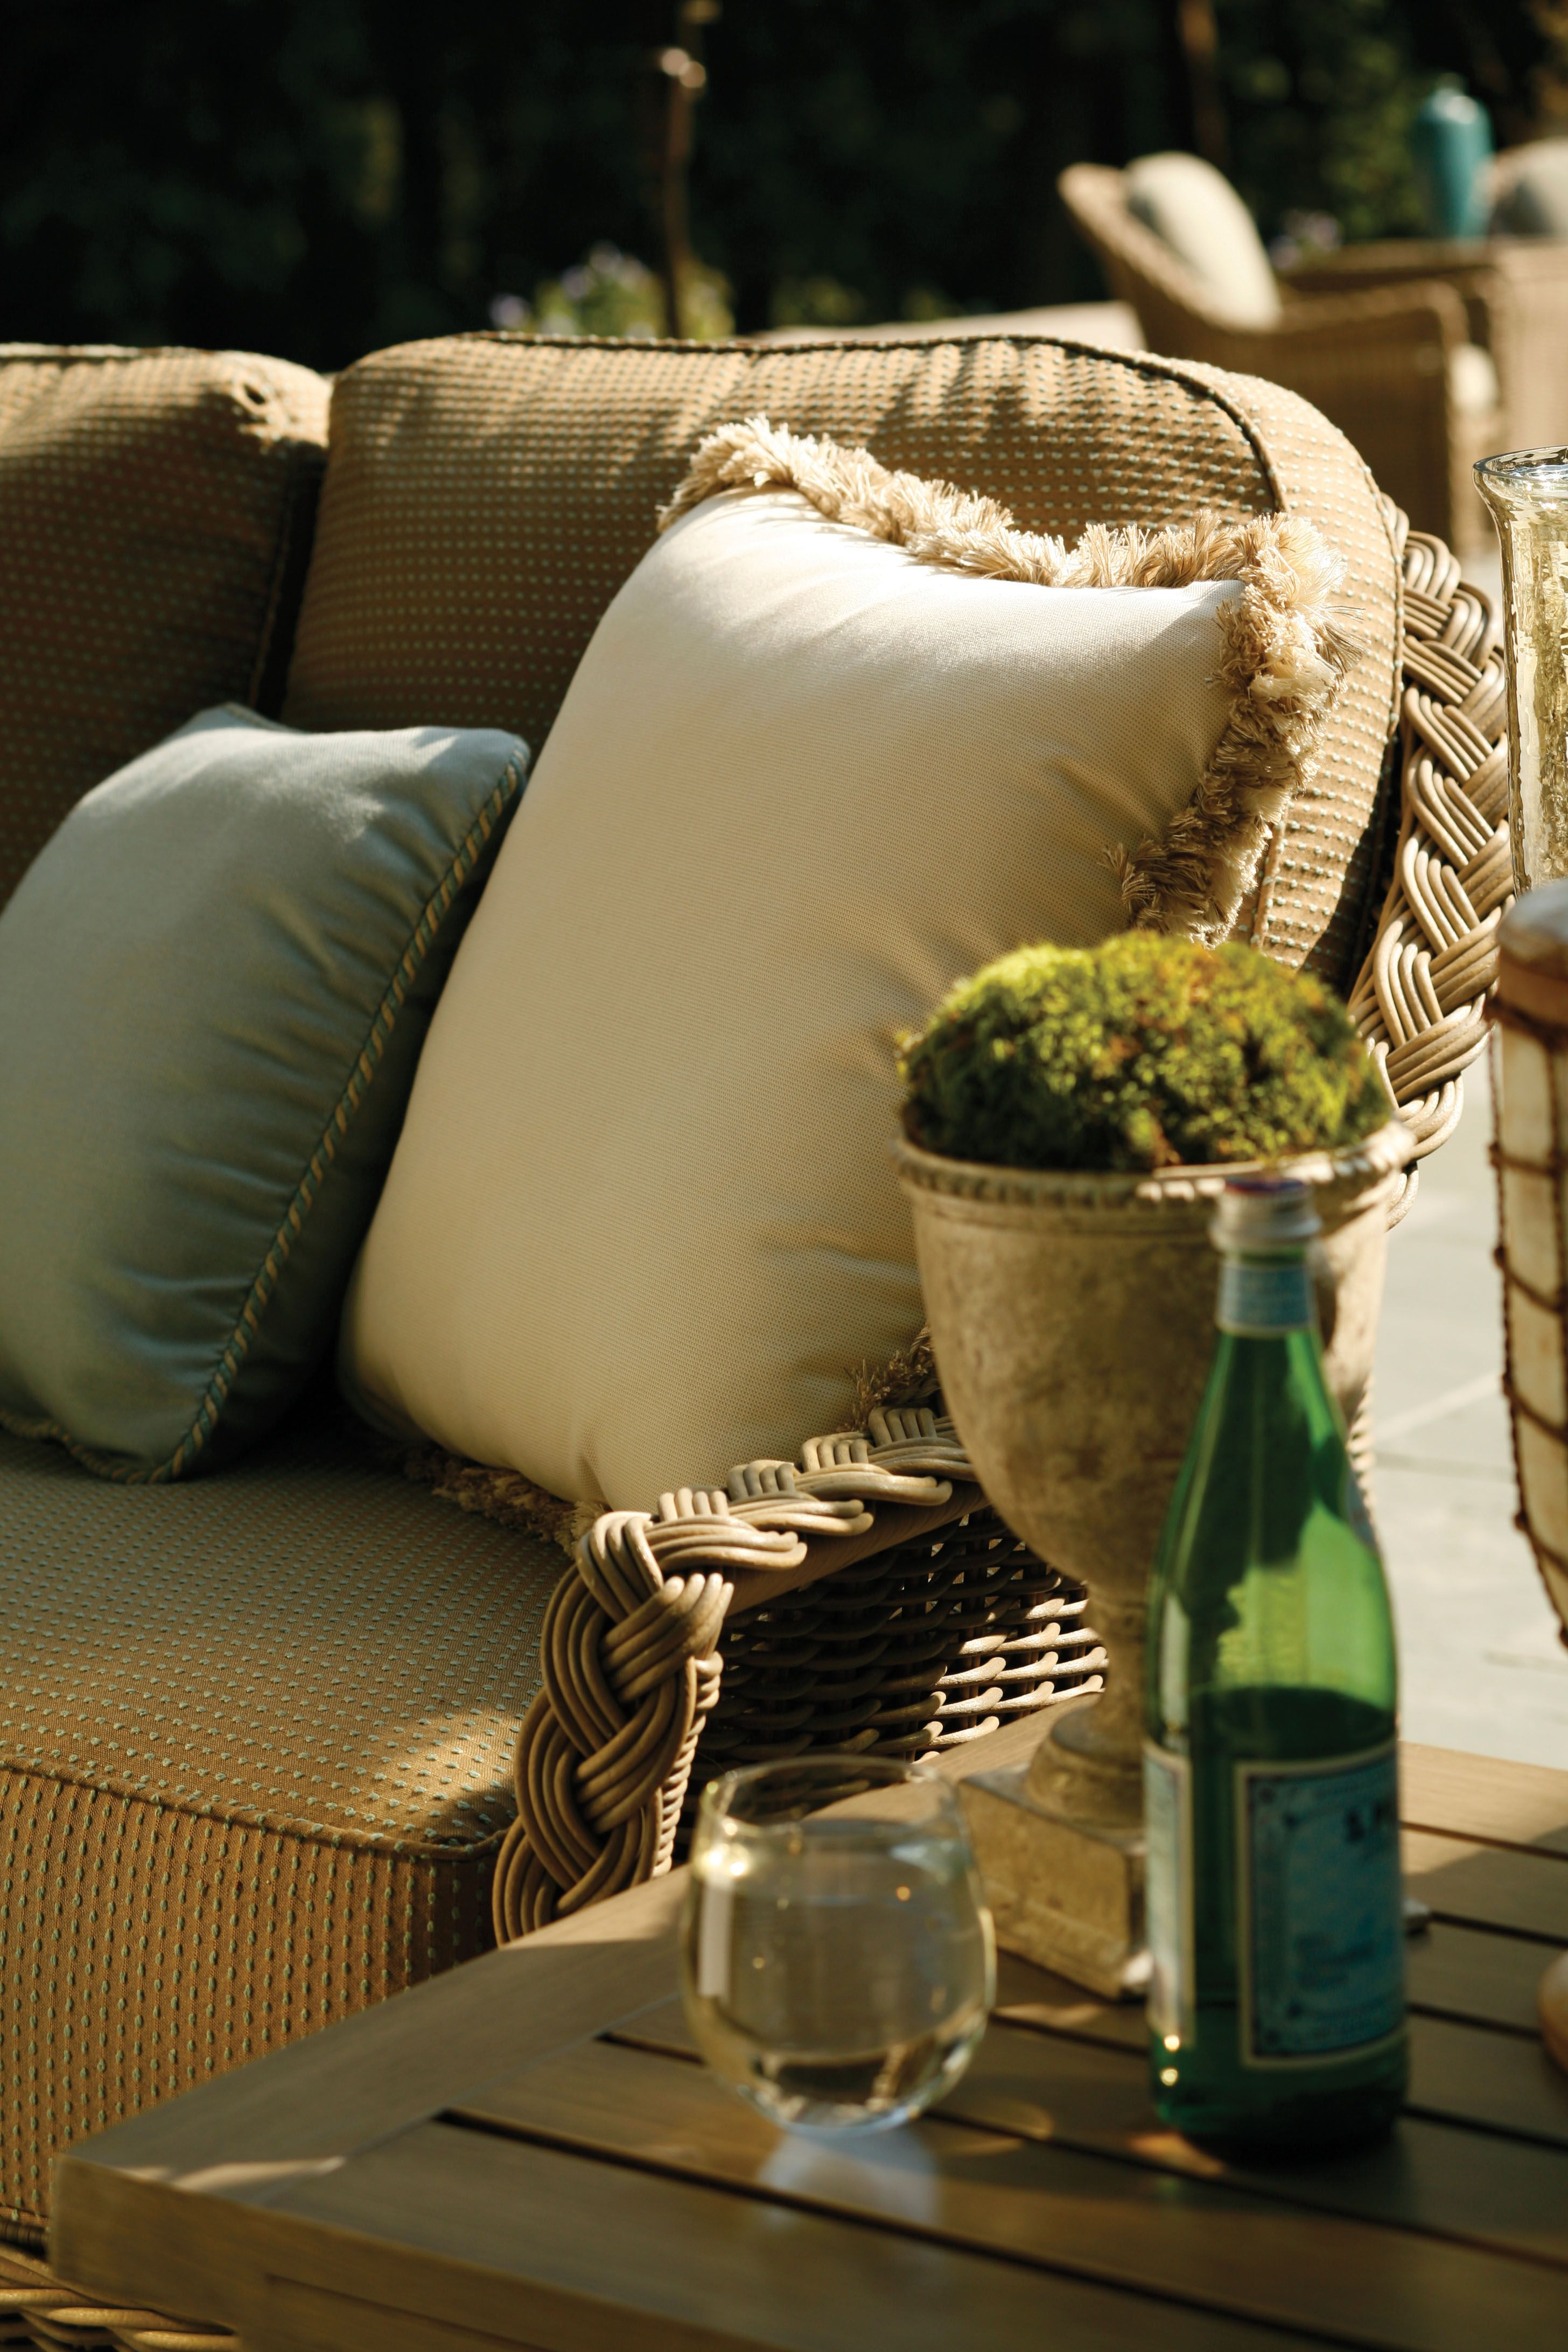 The Summer Classics Sedona collection features a hand ... on Fine Living Patio Set id=73557